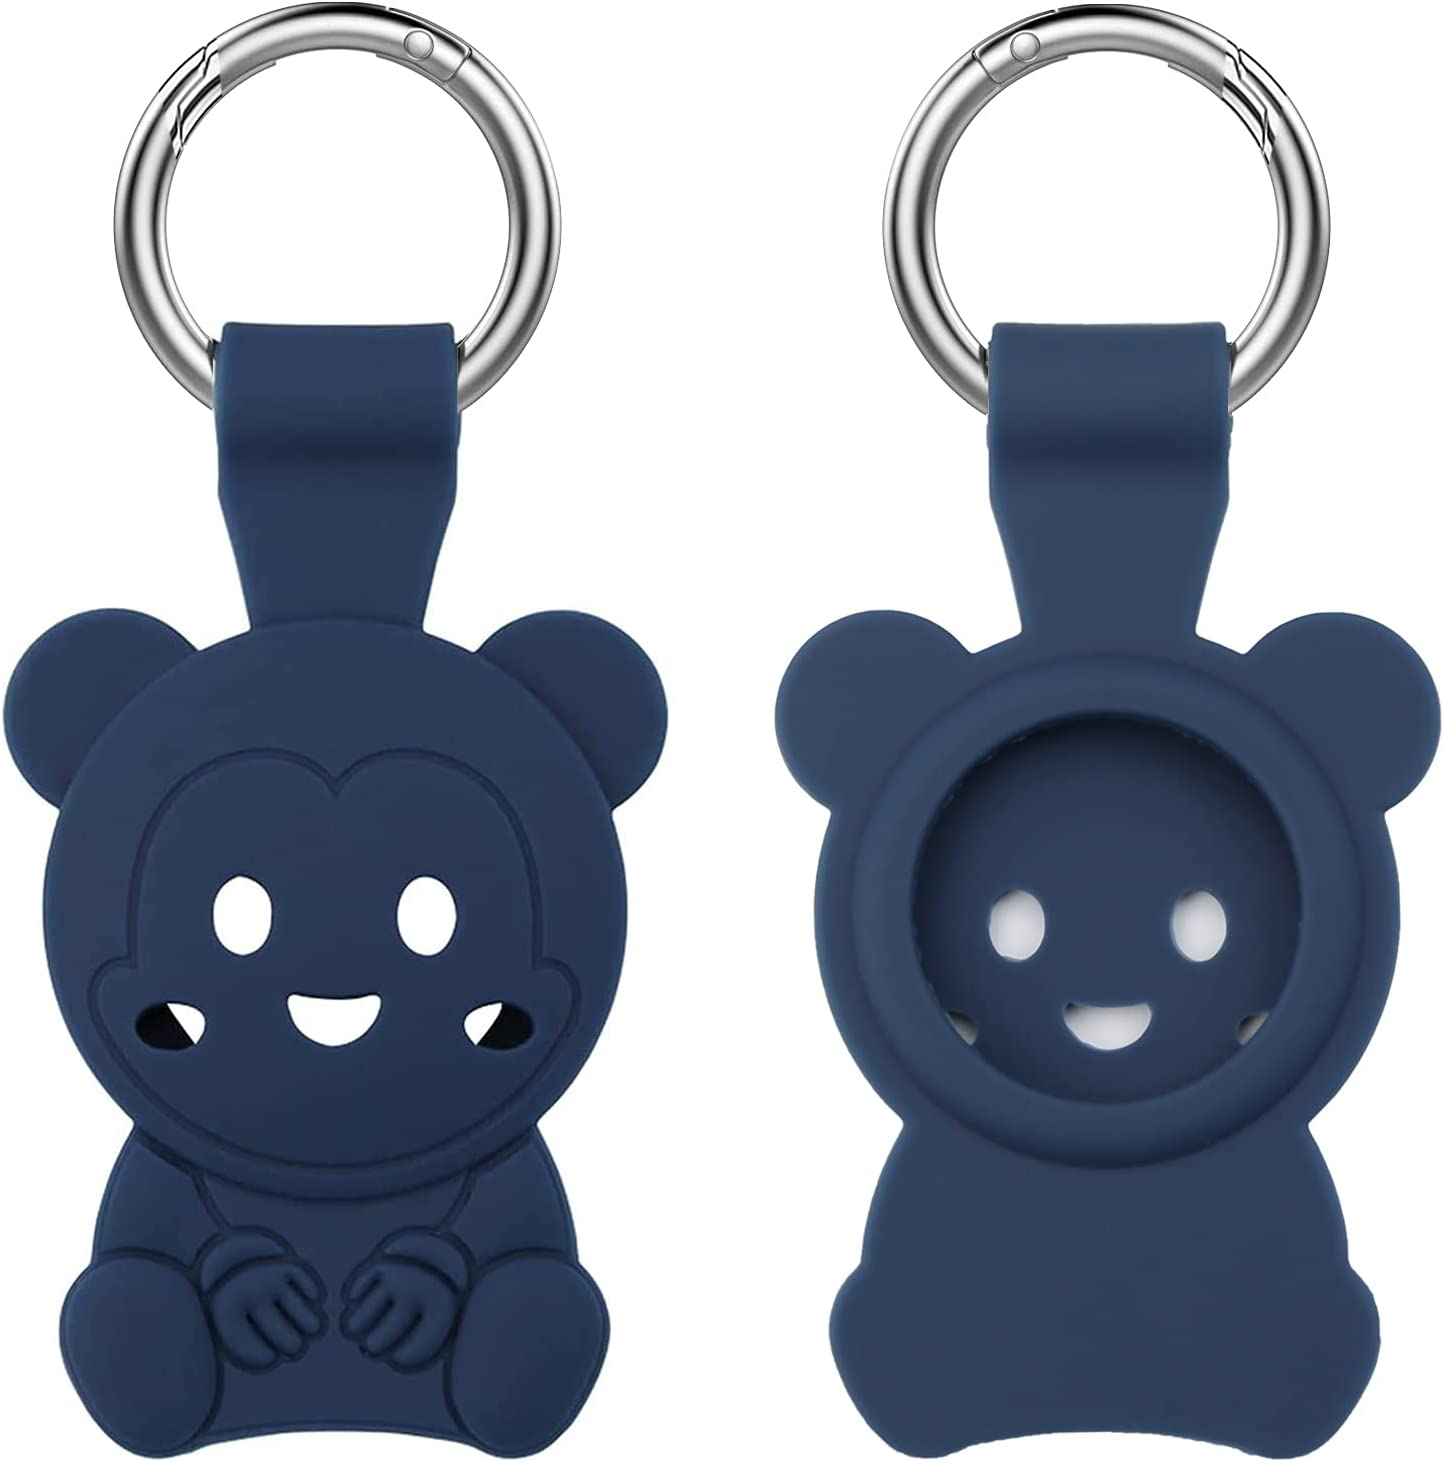 1-Pack Sale SALE% OFF Silicone Case Key Chain for Cute Apple Cover shopping AirTag Bear